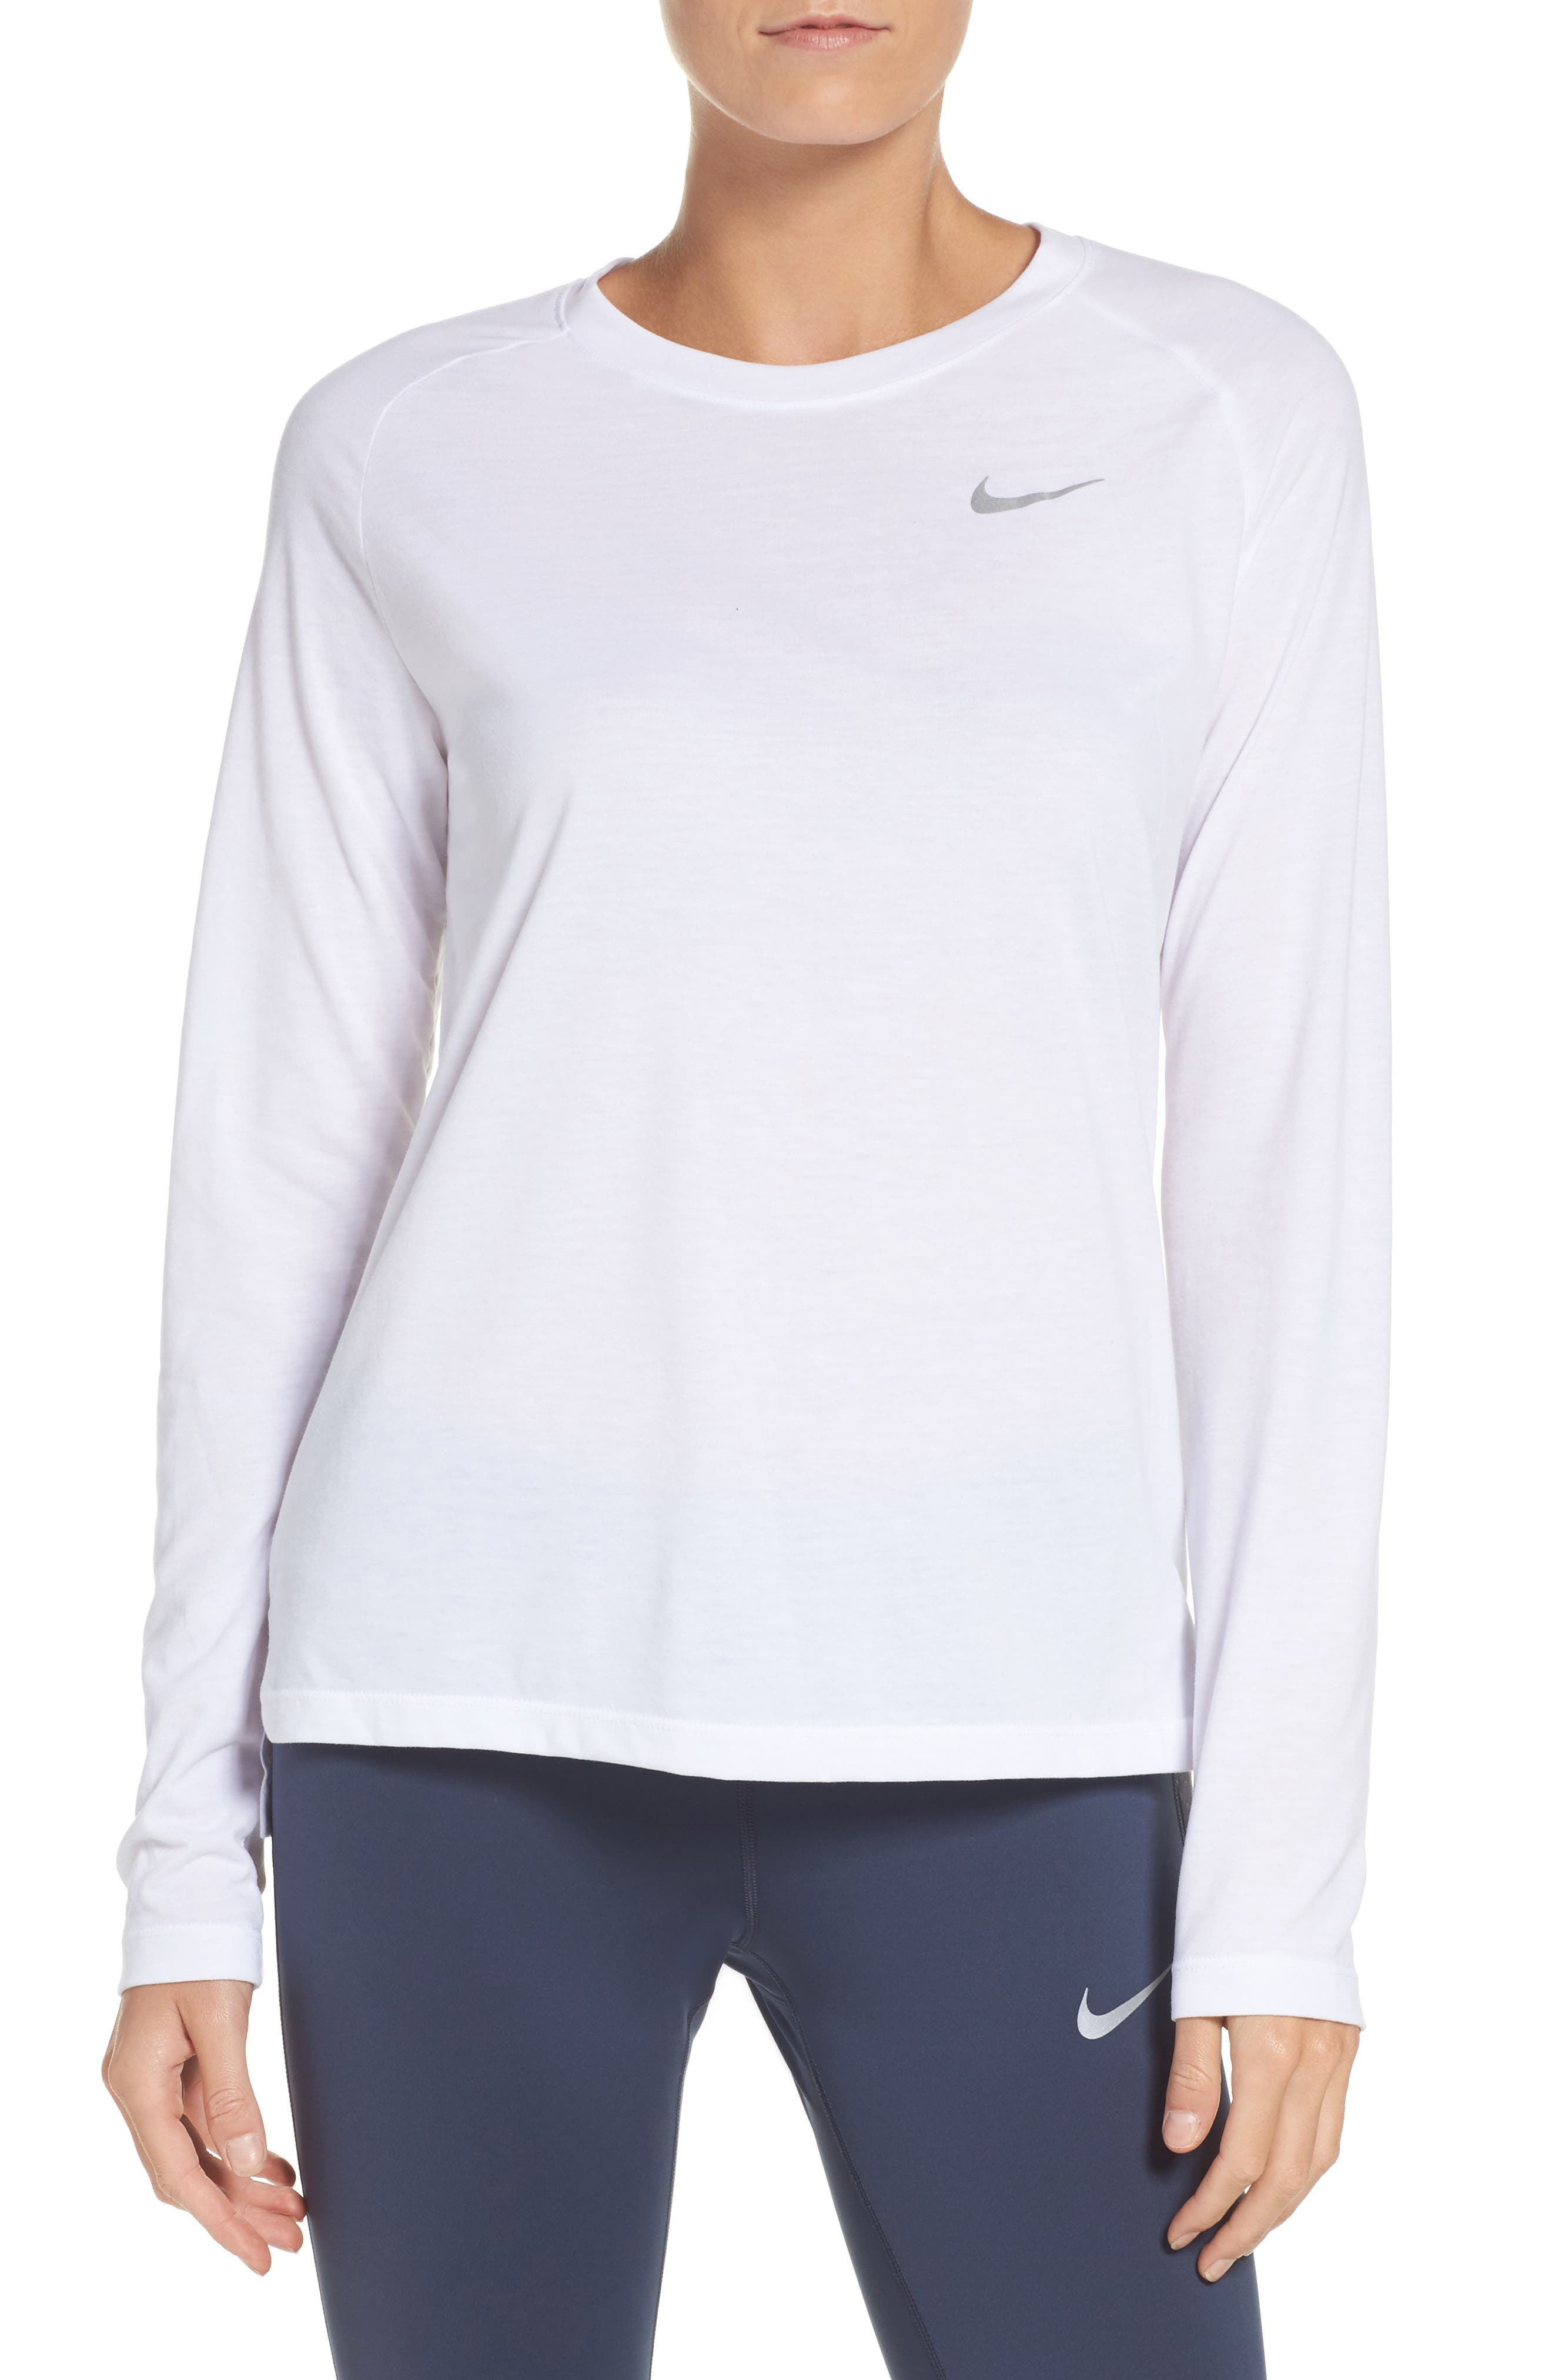 Breathe Tailwind Running Top,                             Main thumbnail 1, color,                             White